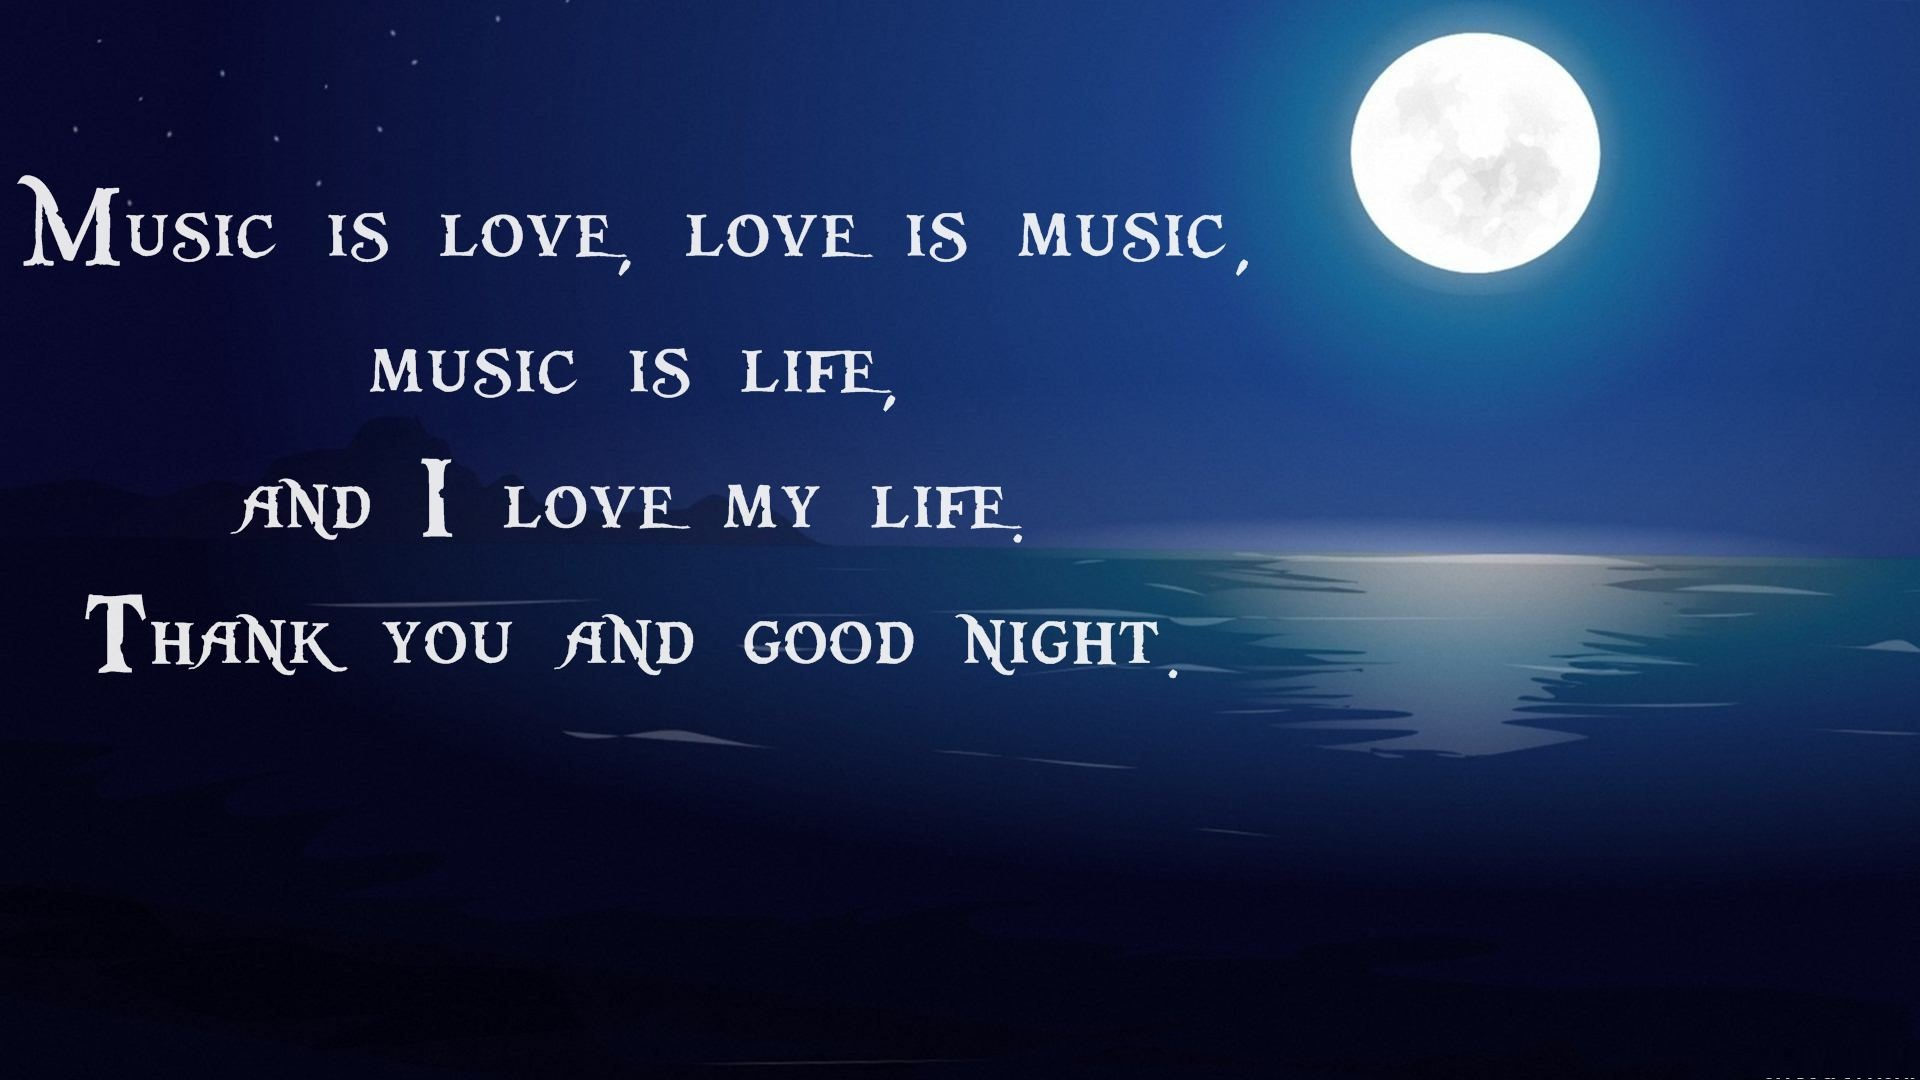 Good Night Wallpaper To Love : Good Night Wallpapers HD with quotes and Wishes